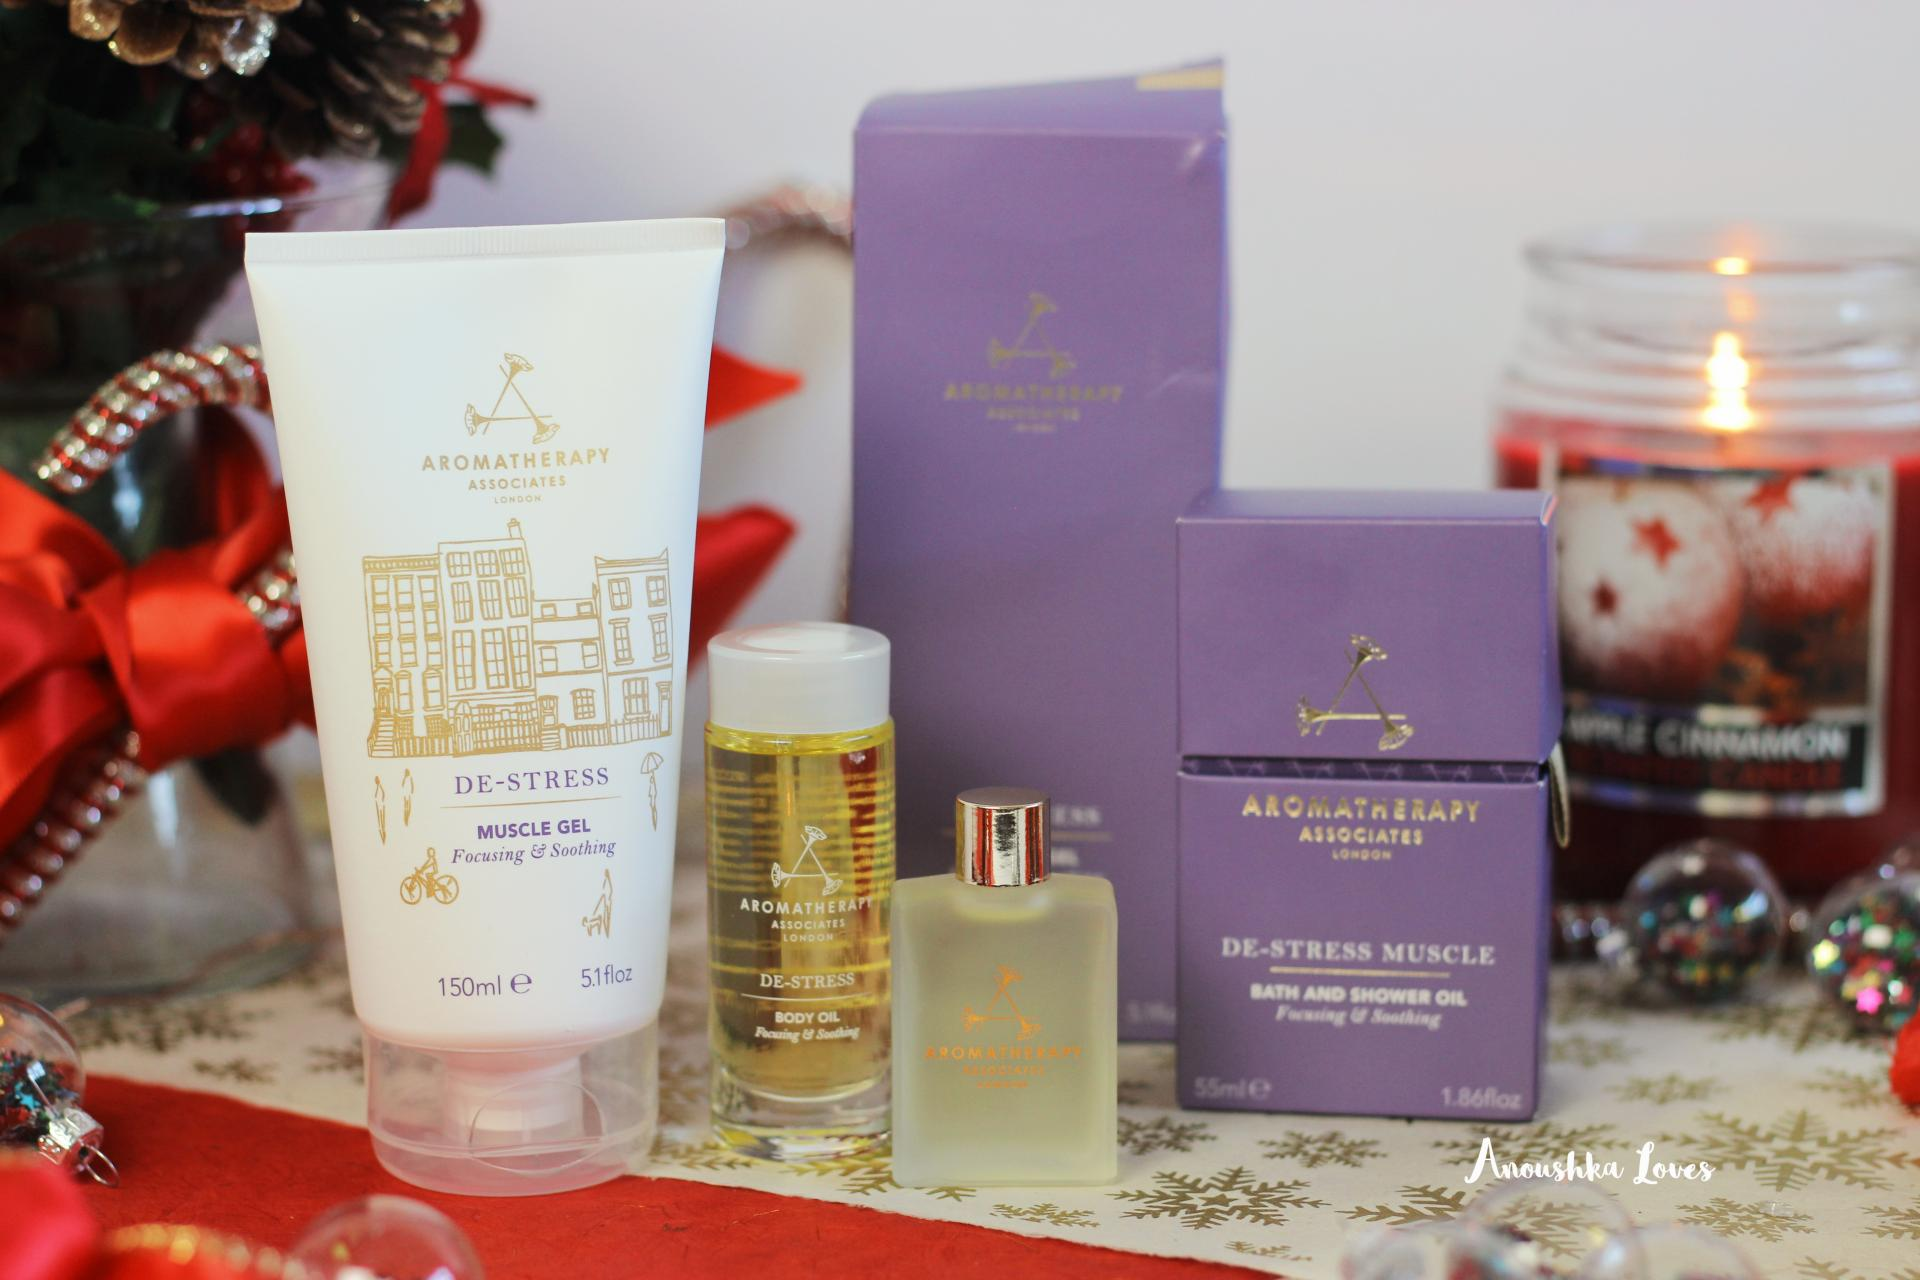 Aromatherapy Associates Christmas